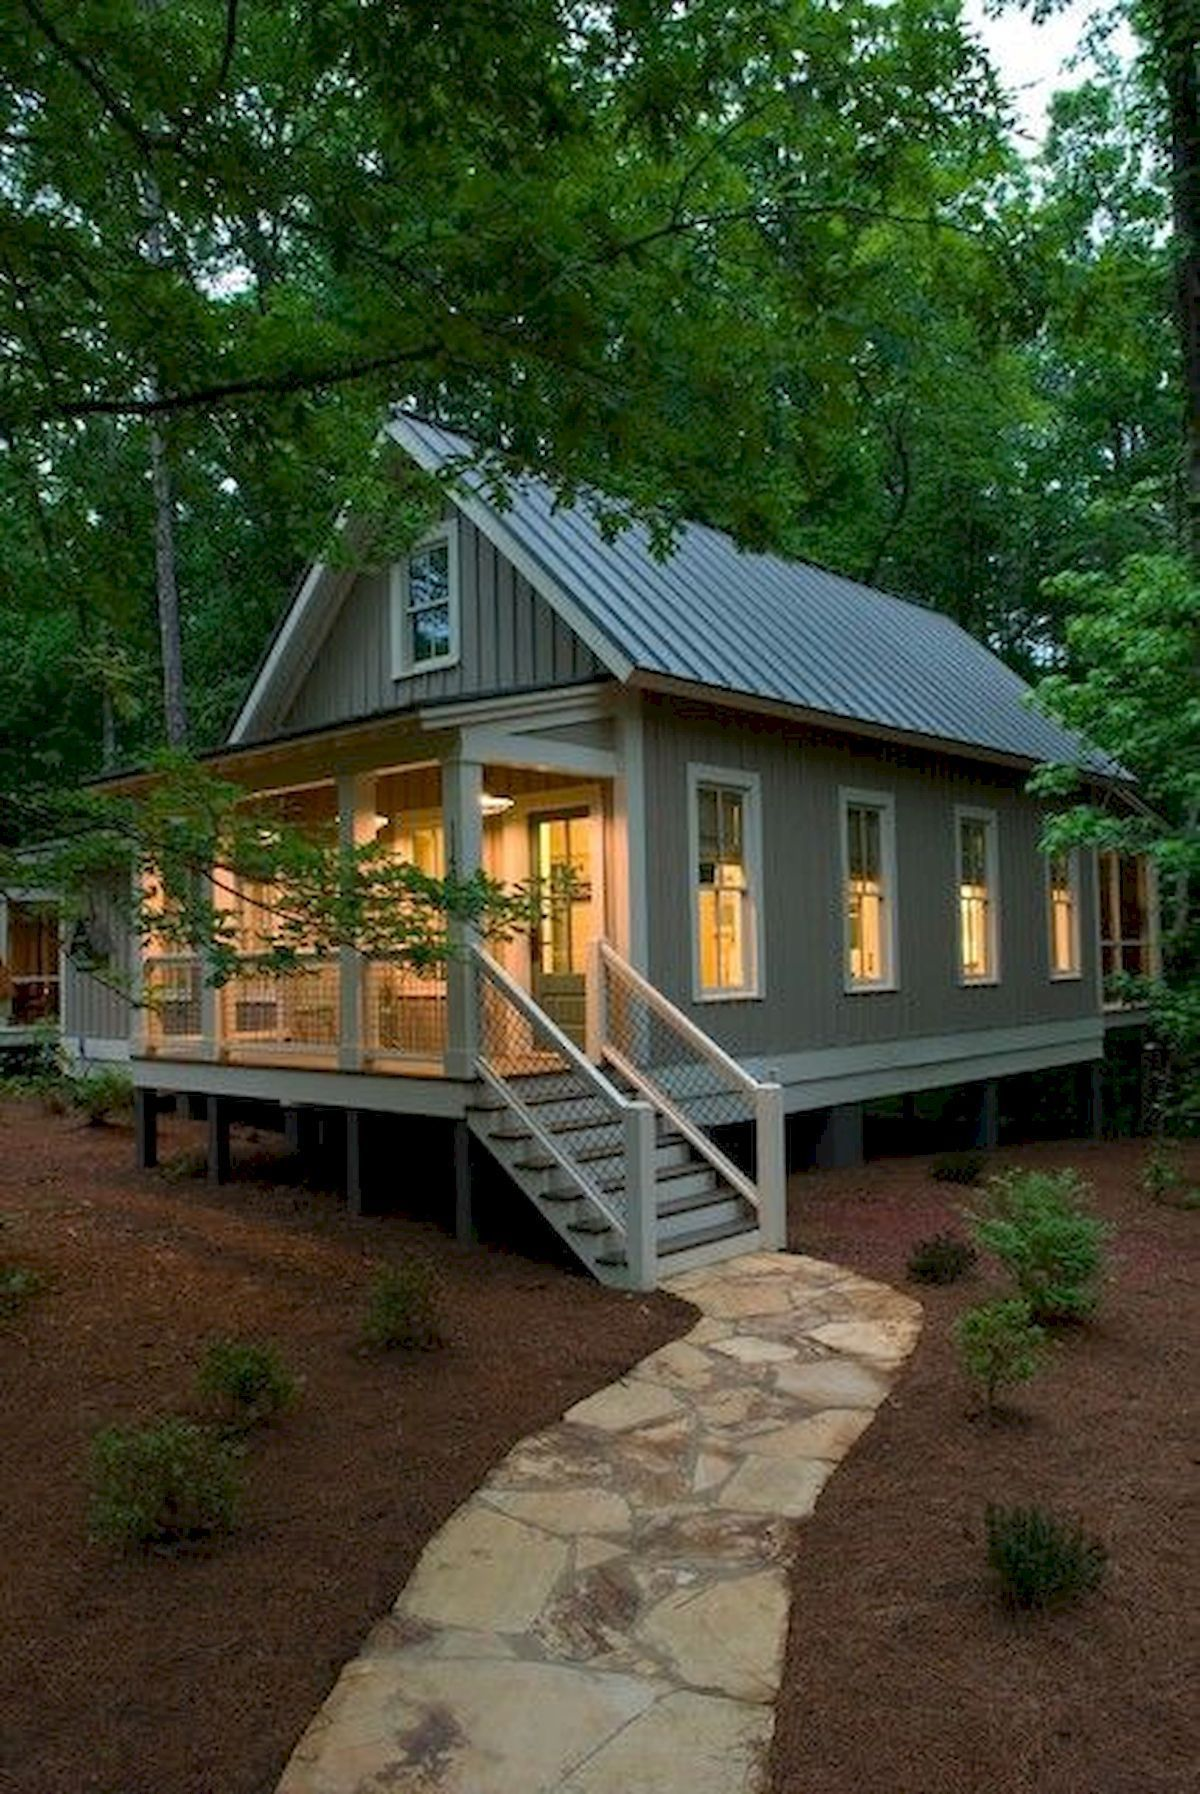 33 Best Tiny House Plans Small Cottages Design Ideas 1 Tiny